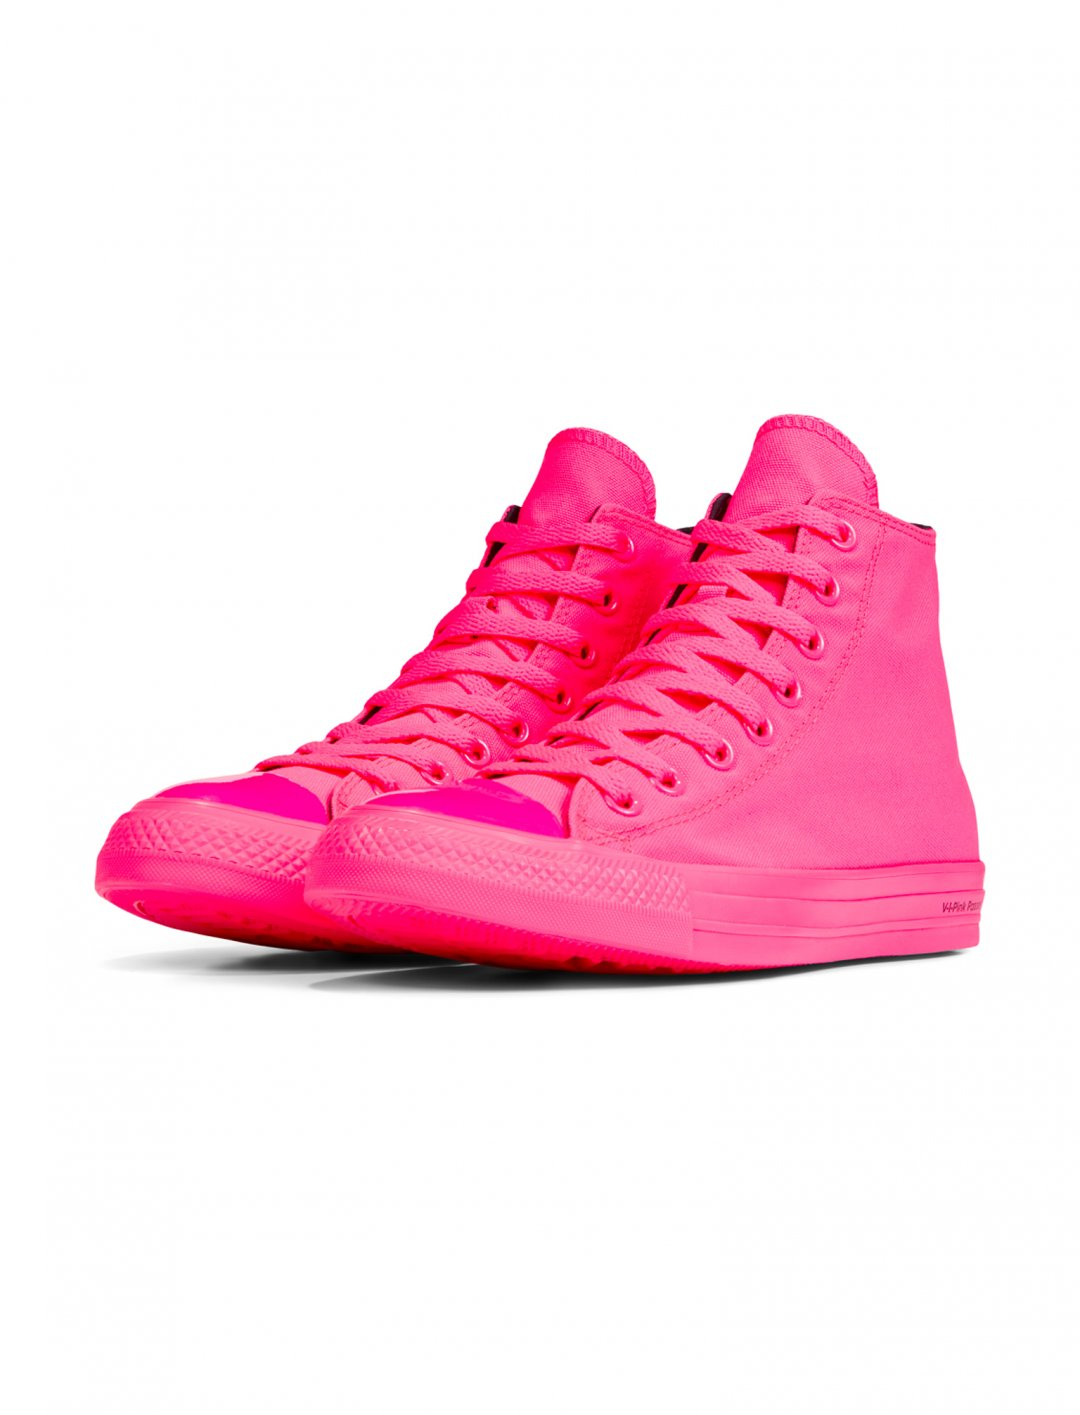 Trainers, Neon Pink, Converse x OPI